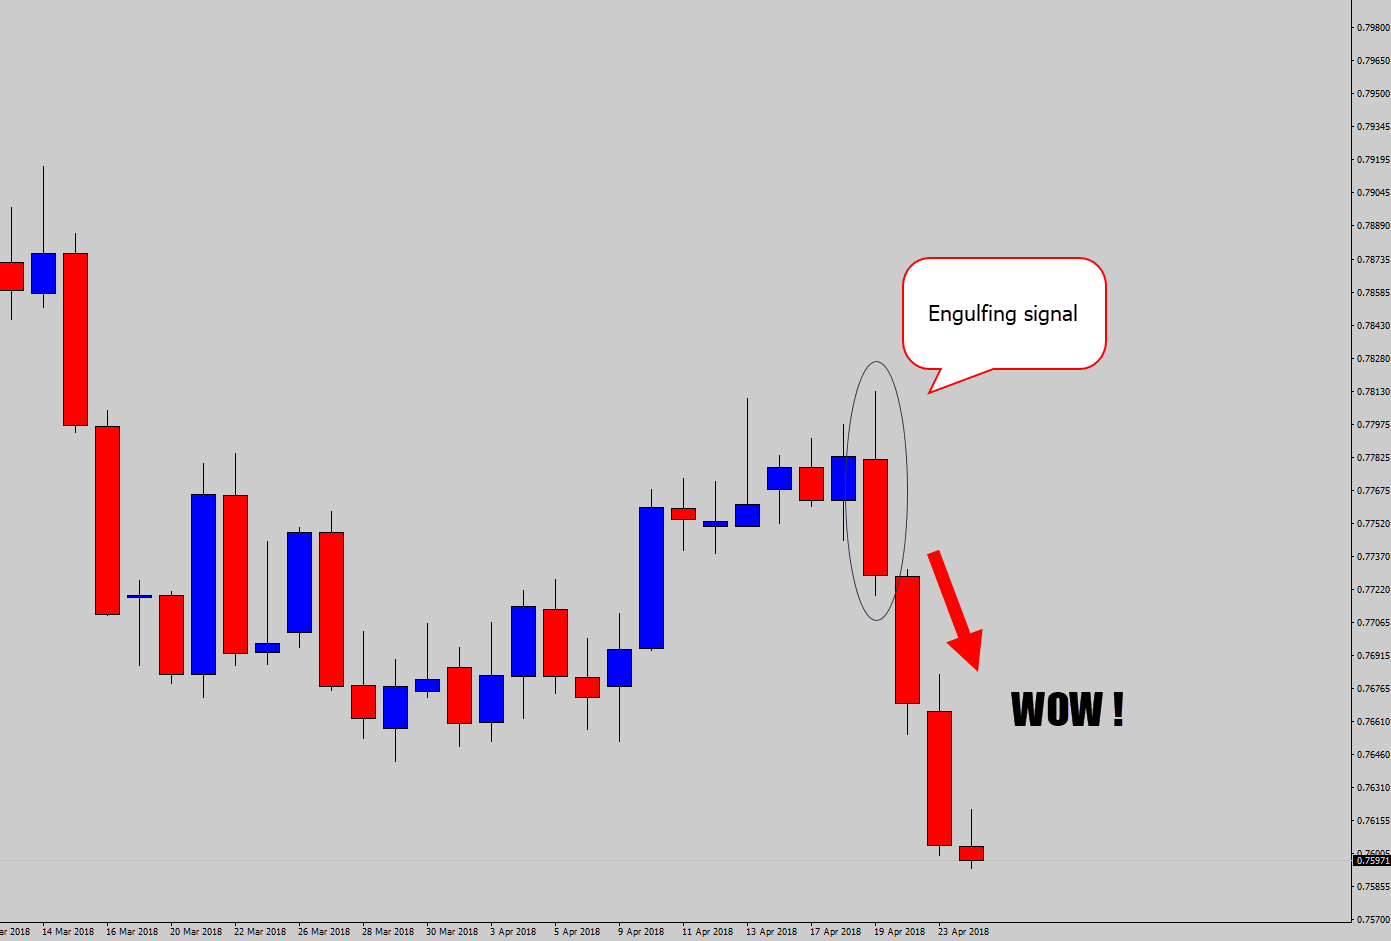 engulfing signal after